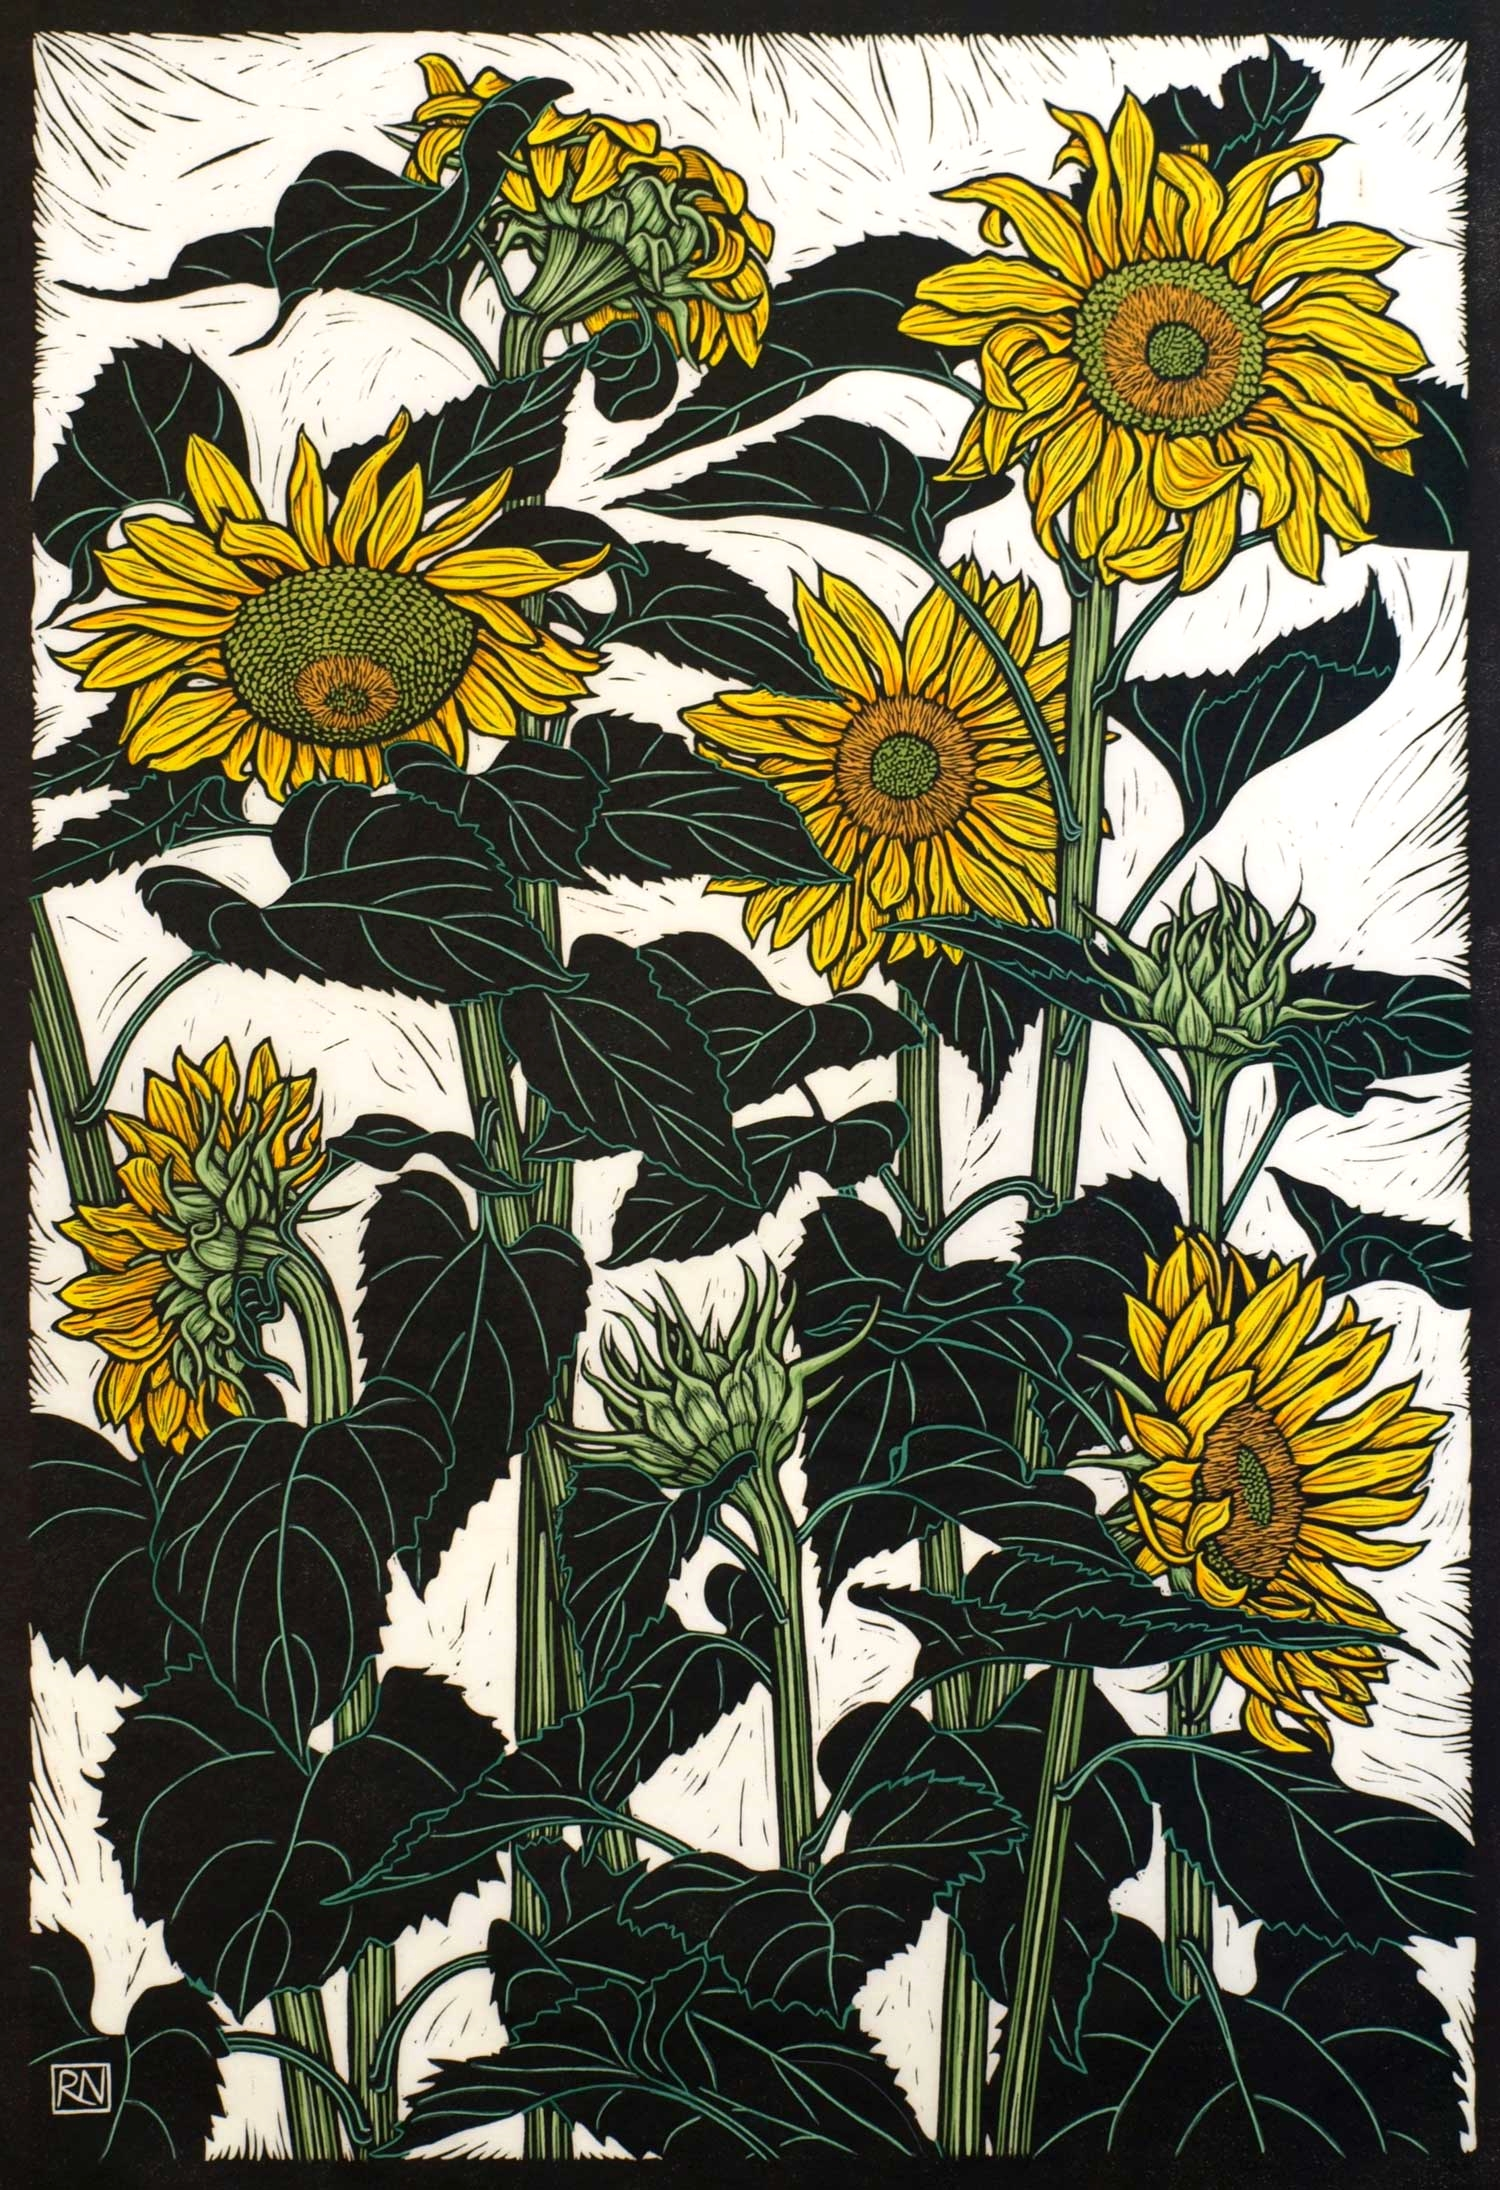 SUNFLOWERS NEWPORT  74.5 X 51 CM, EDITION OF 50  HAND-cOLOURED LINOCUT ON HANDMADE JAPANESE PAPER  $1,700